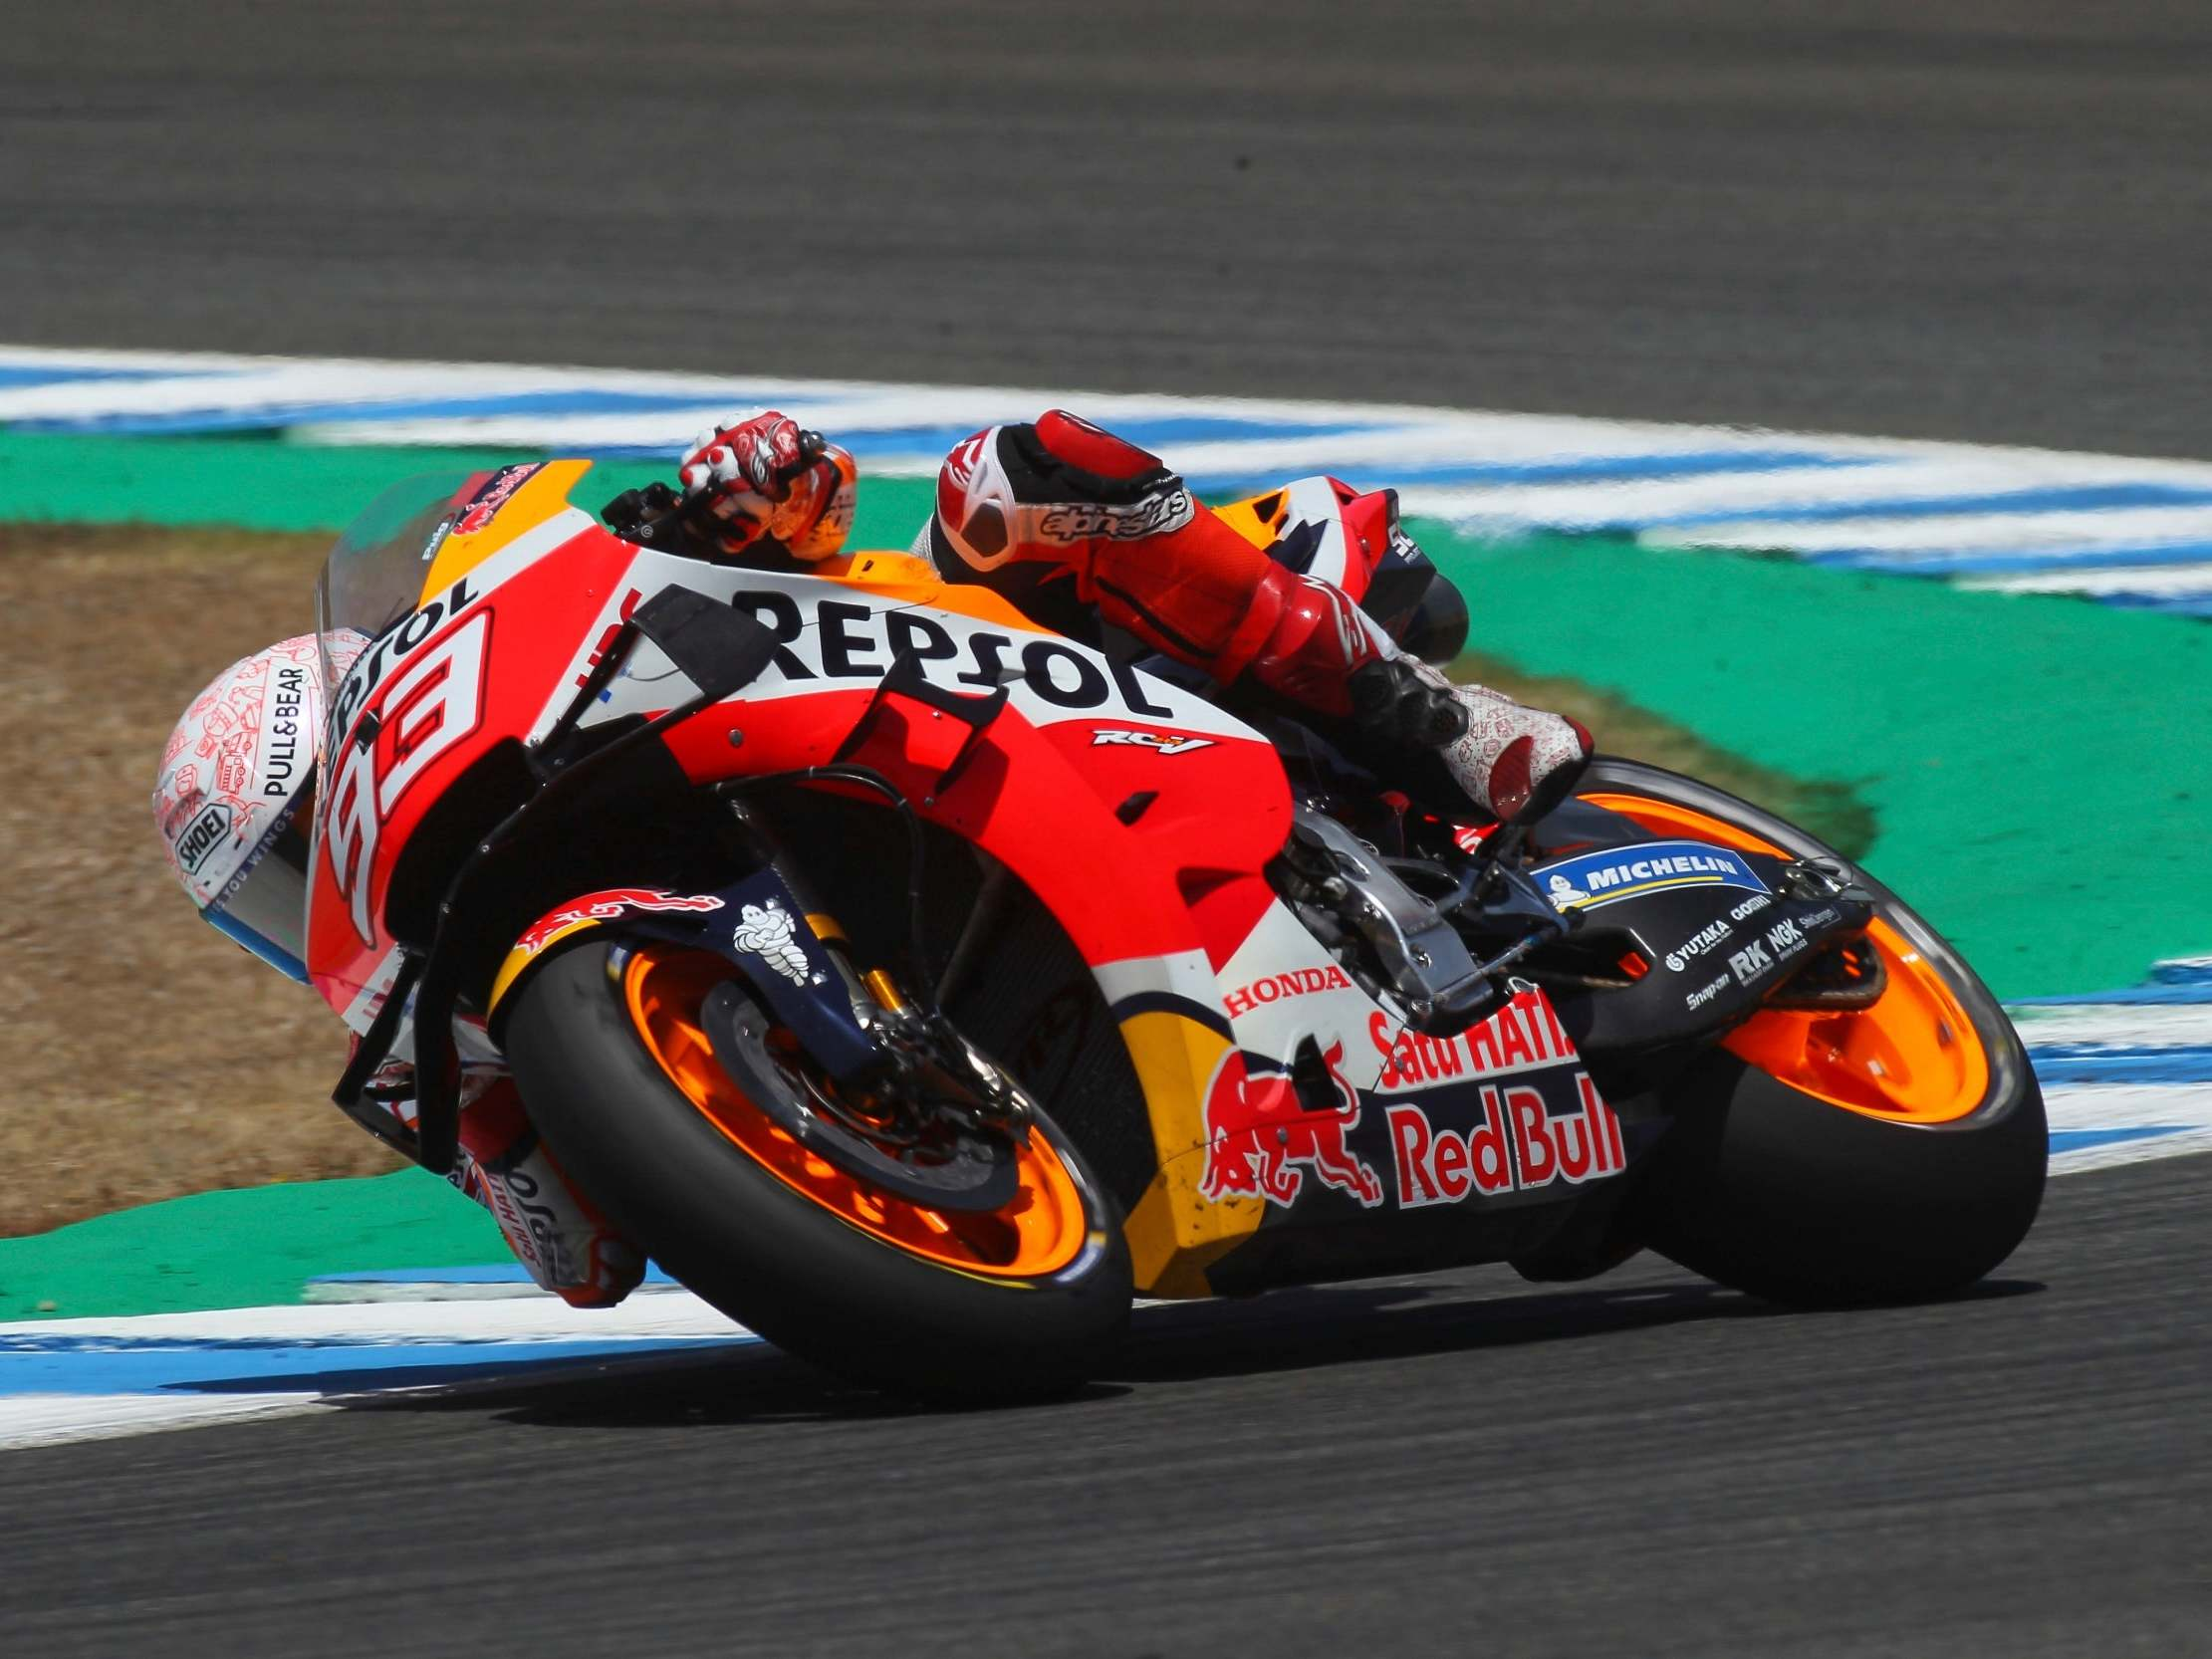 Marc Marquez Suffers Broken Arm And Possible Nerve Damage After Crash In Opening Motogp Race The Independent The Independent